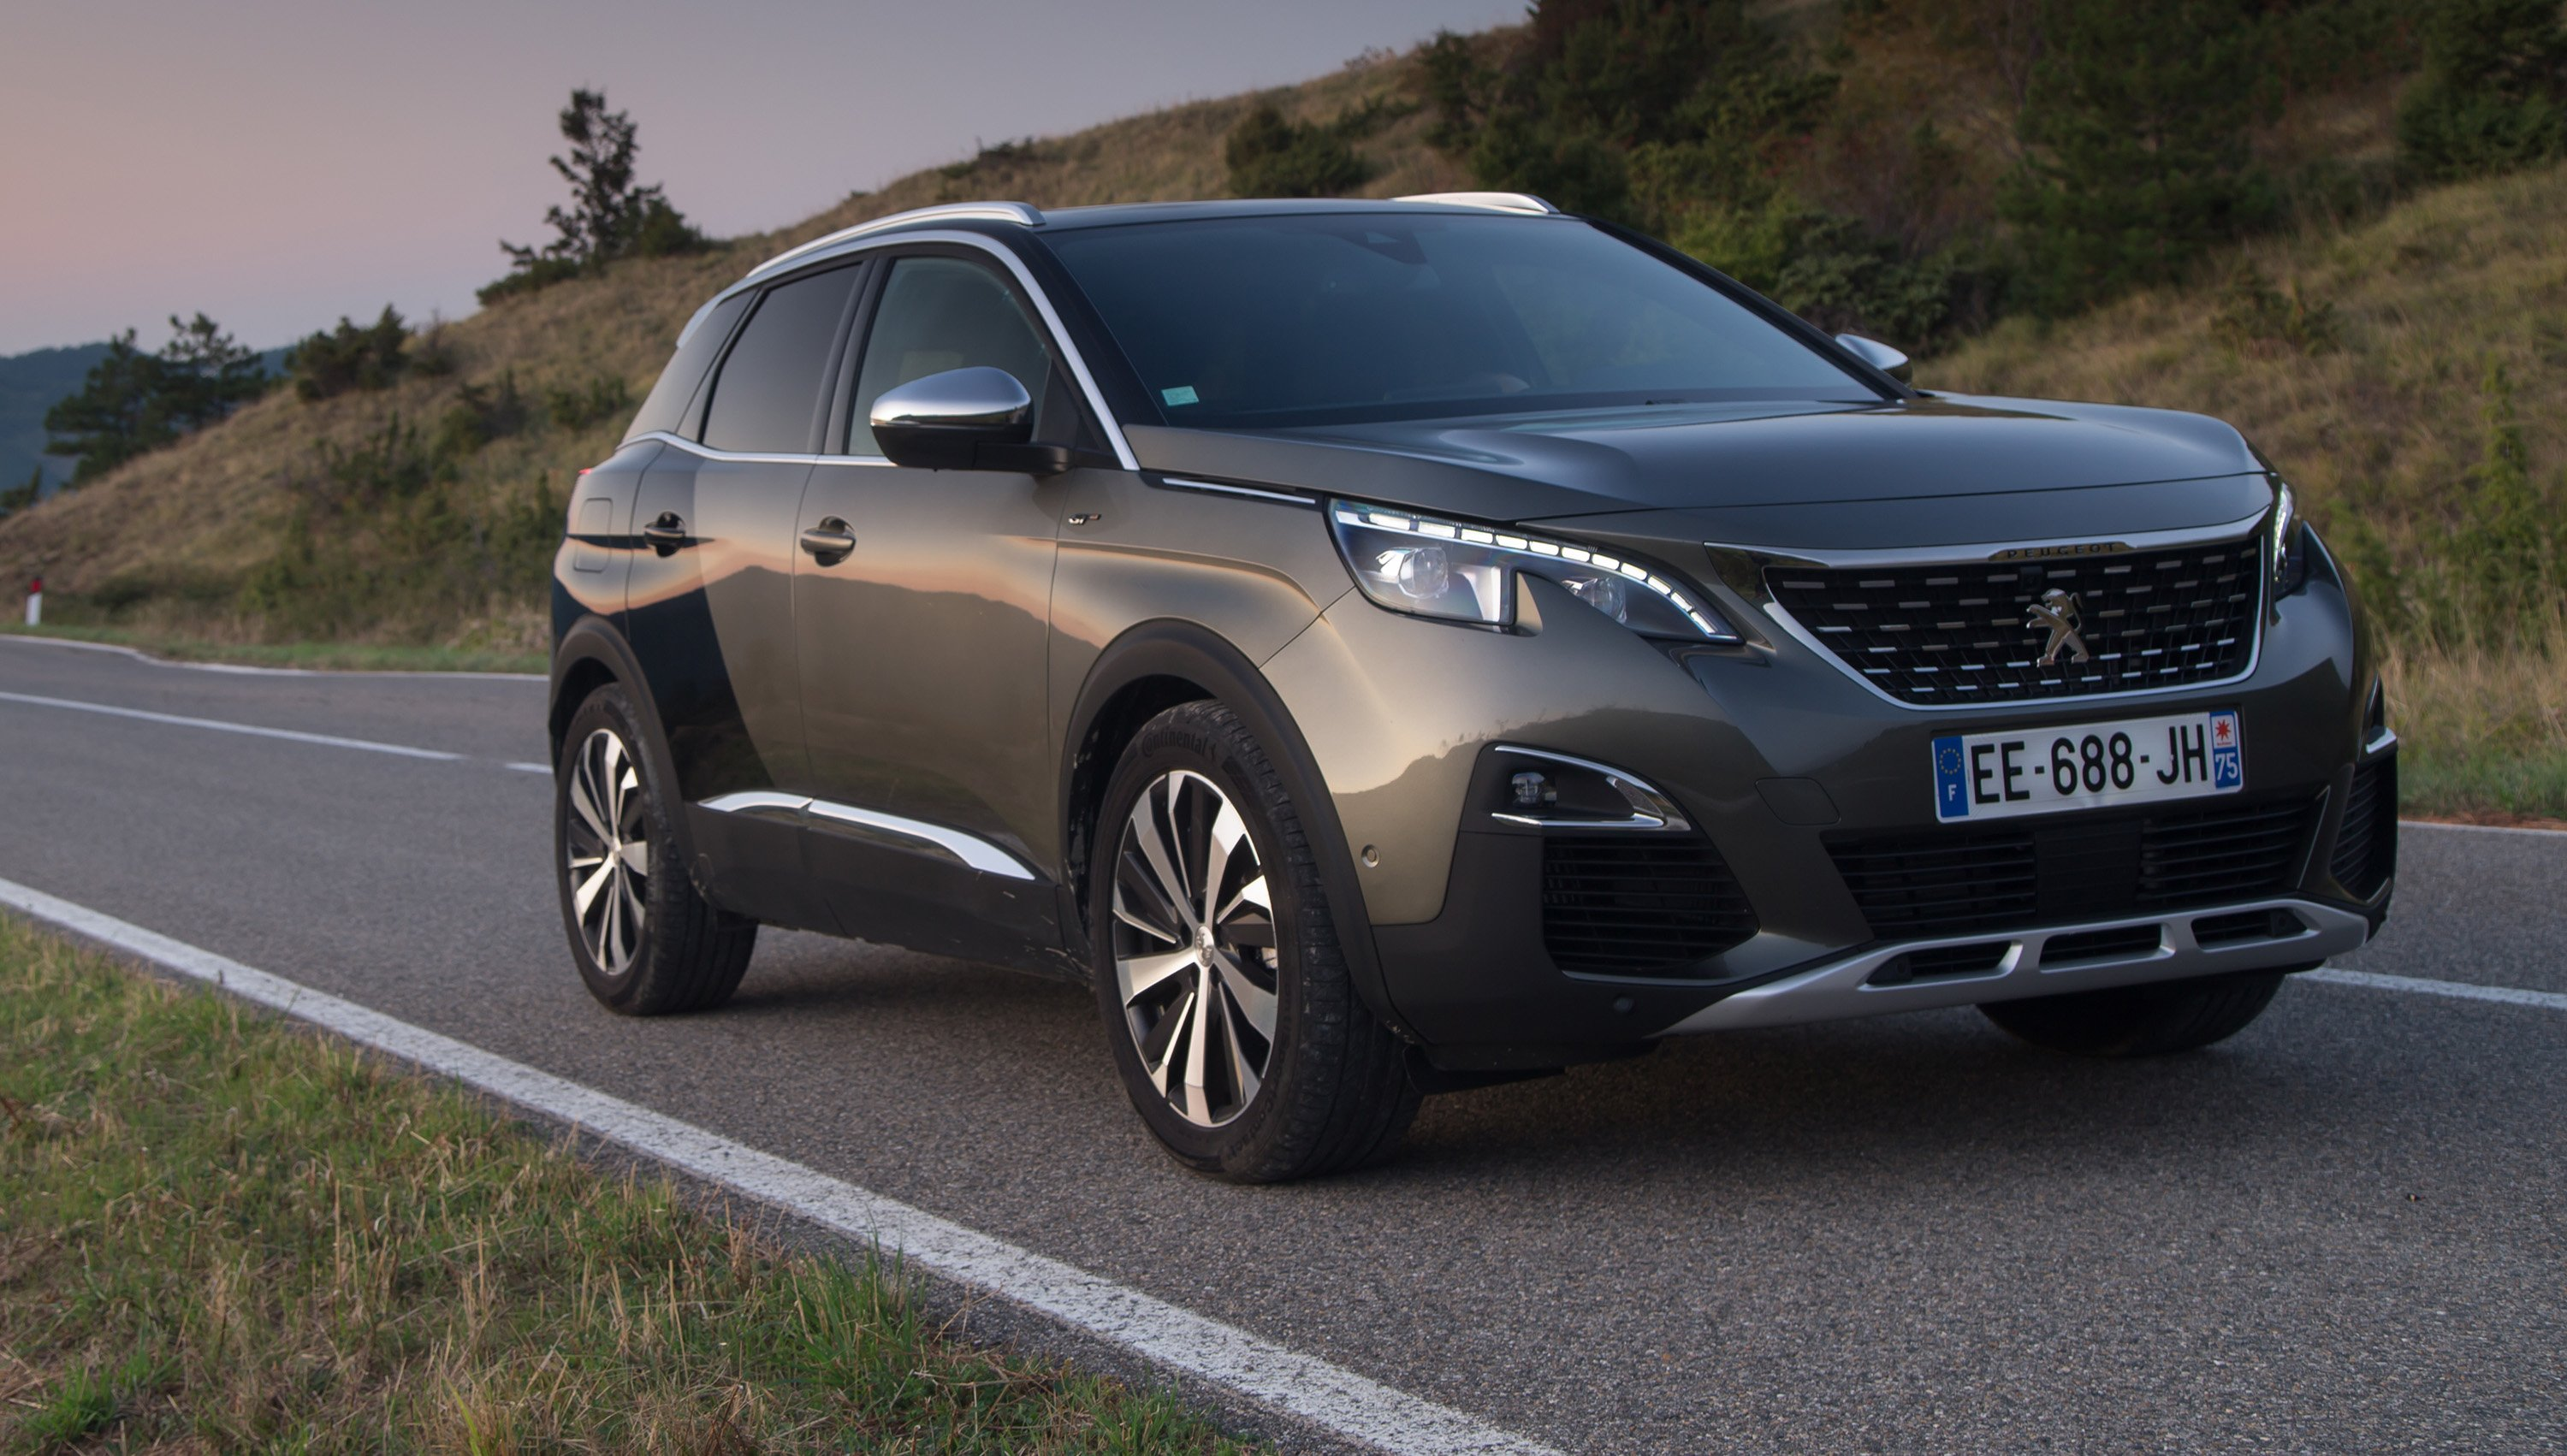 Corolla S 2017 >> 2018 Peugeot 3008 pricing and specs: New-gen SUV touches down - Photos (1 of 26)